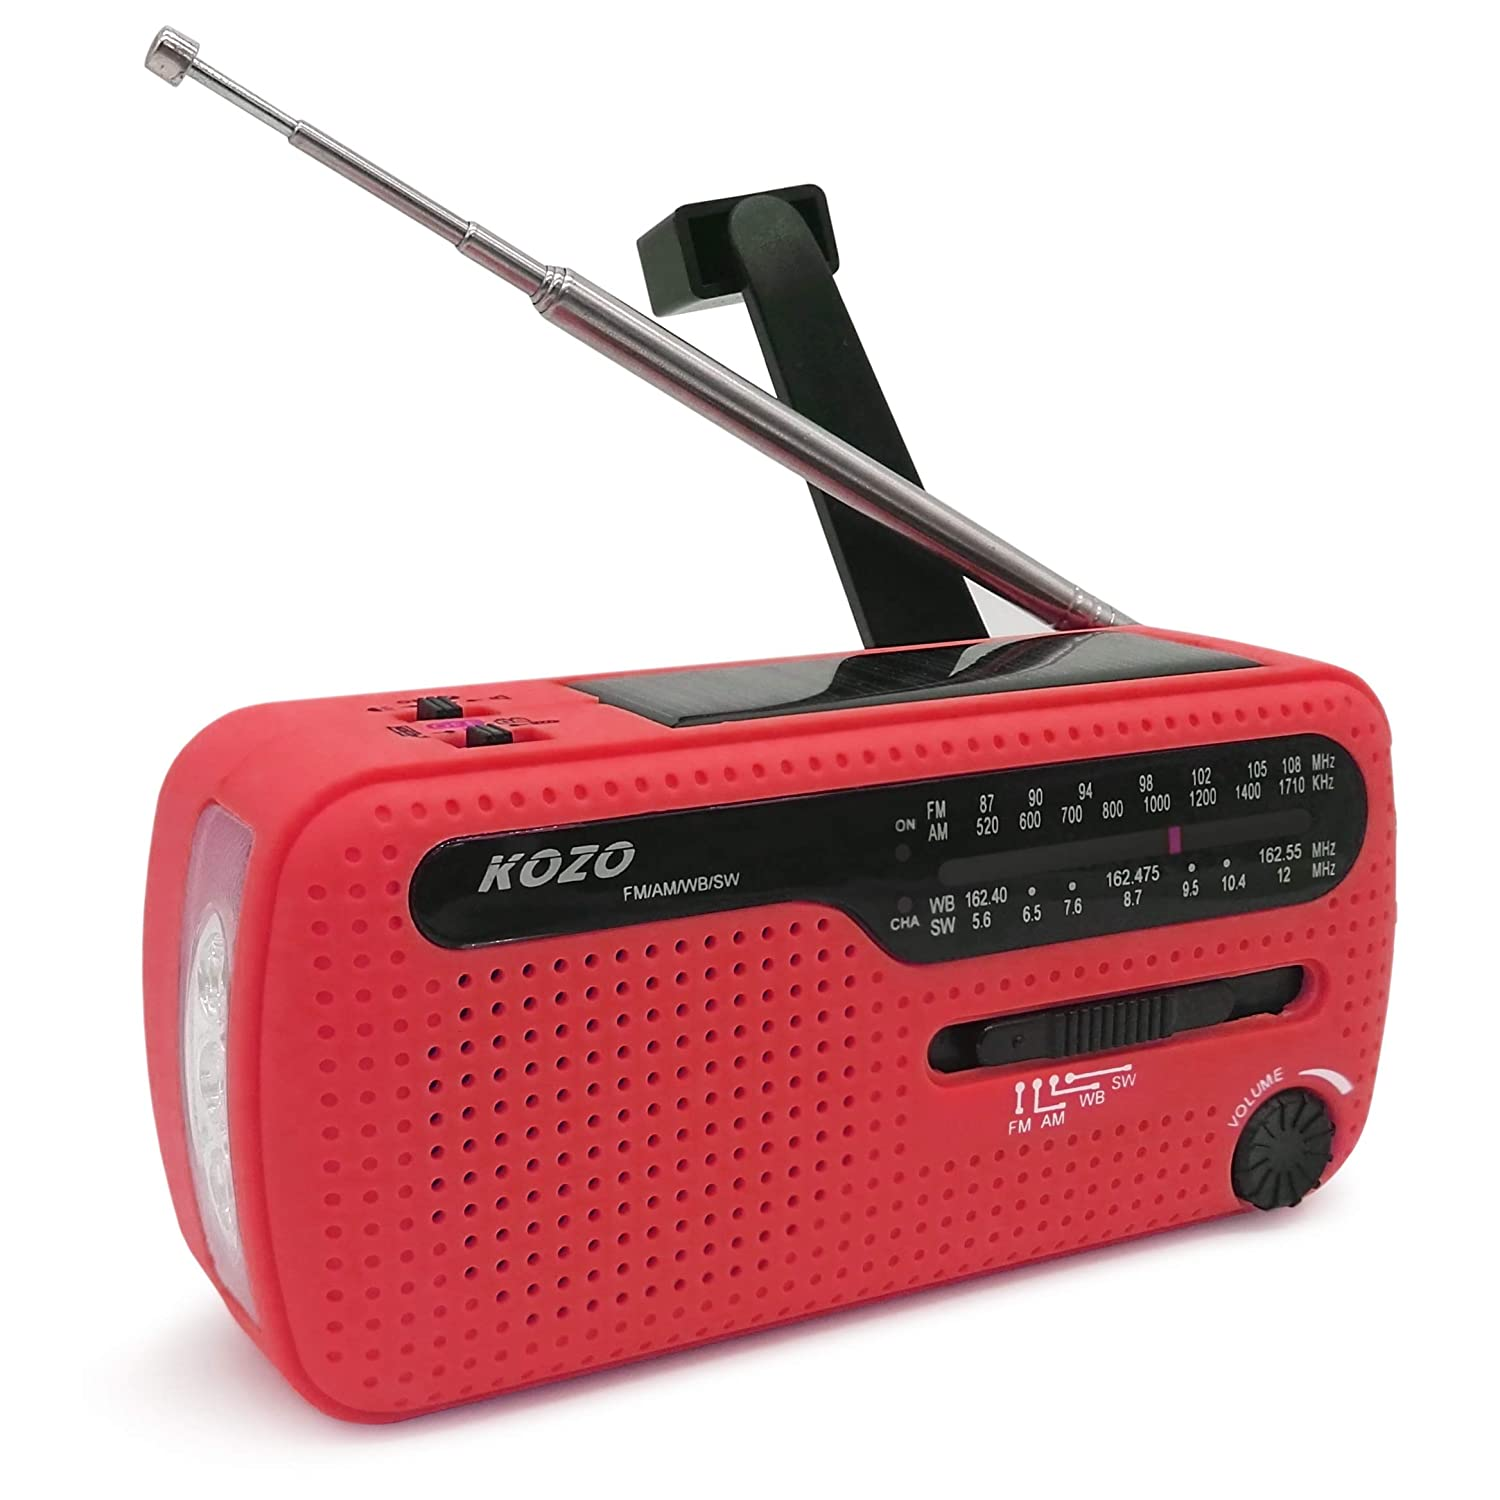 Best Noaa Weather Radio for Emergency by Kozo. Multiple Ways to Charge, Self Powered by Dynamo Hand Crank & Solar Panel, Long Antenna to Pick up Reception Everywhere Kozo-001